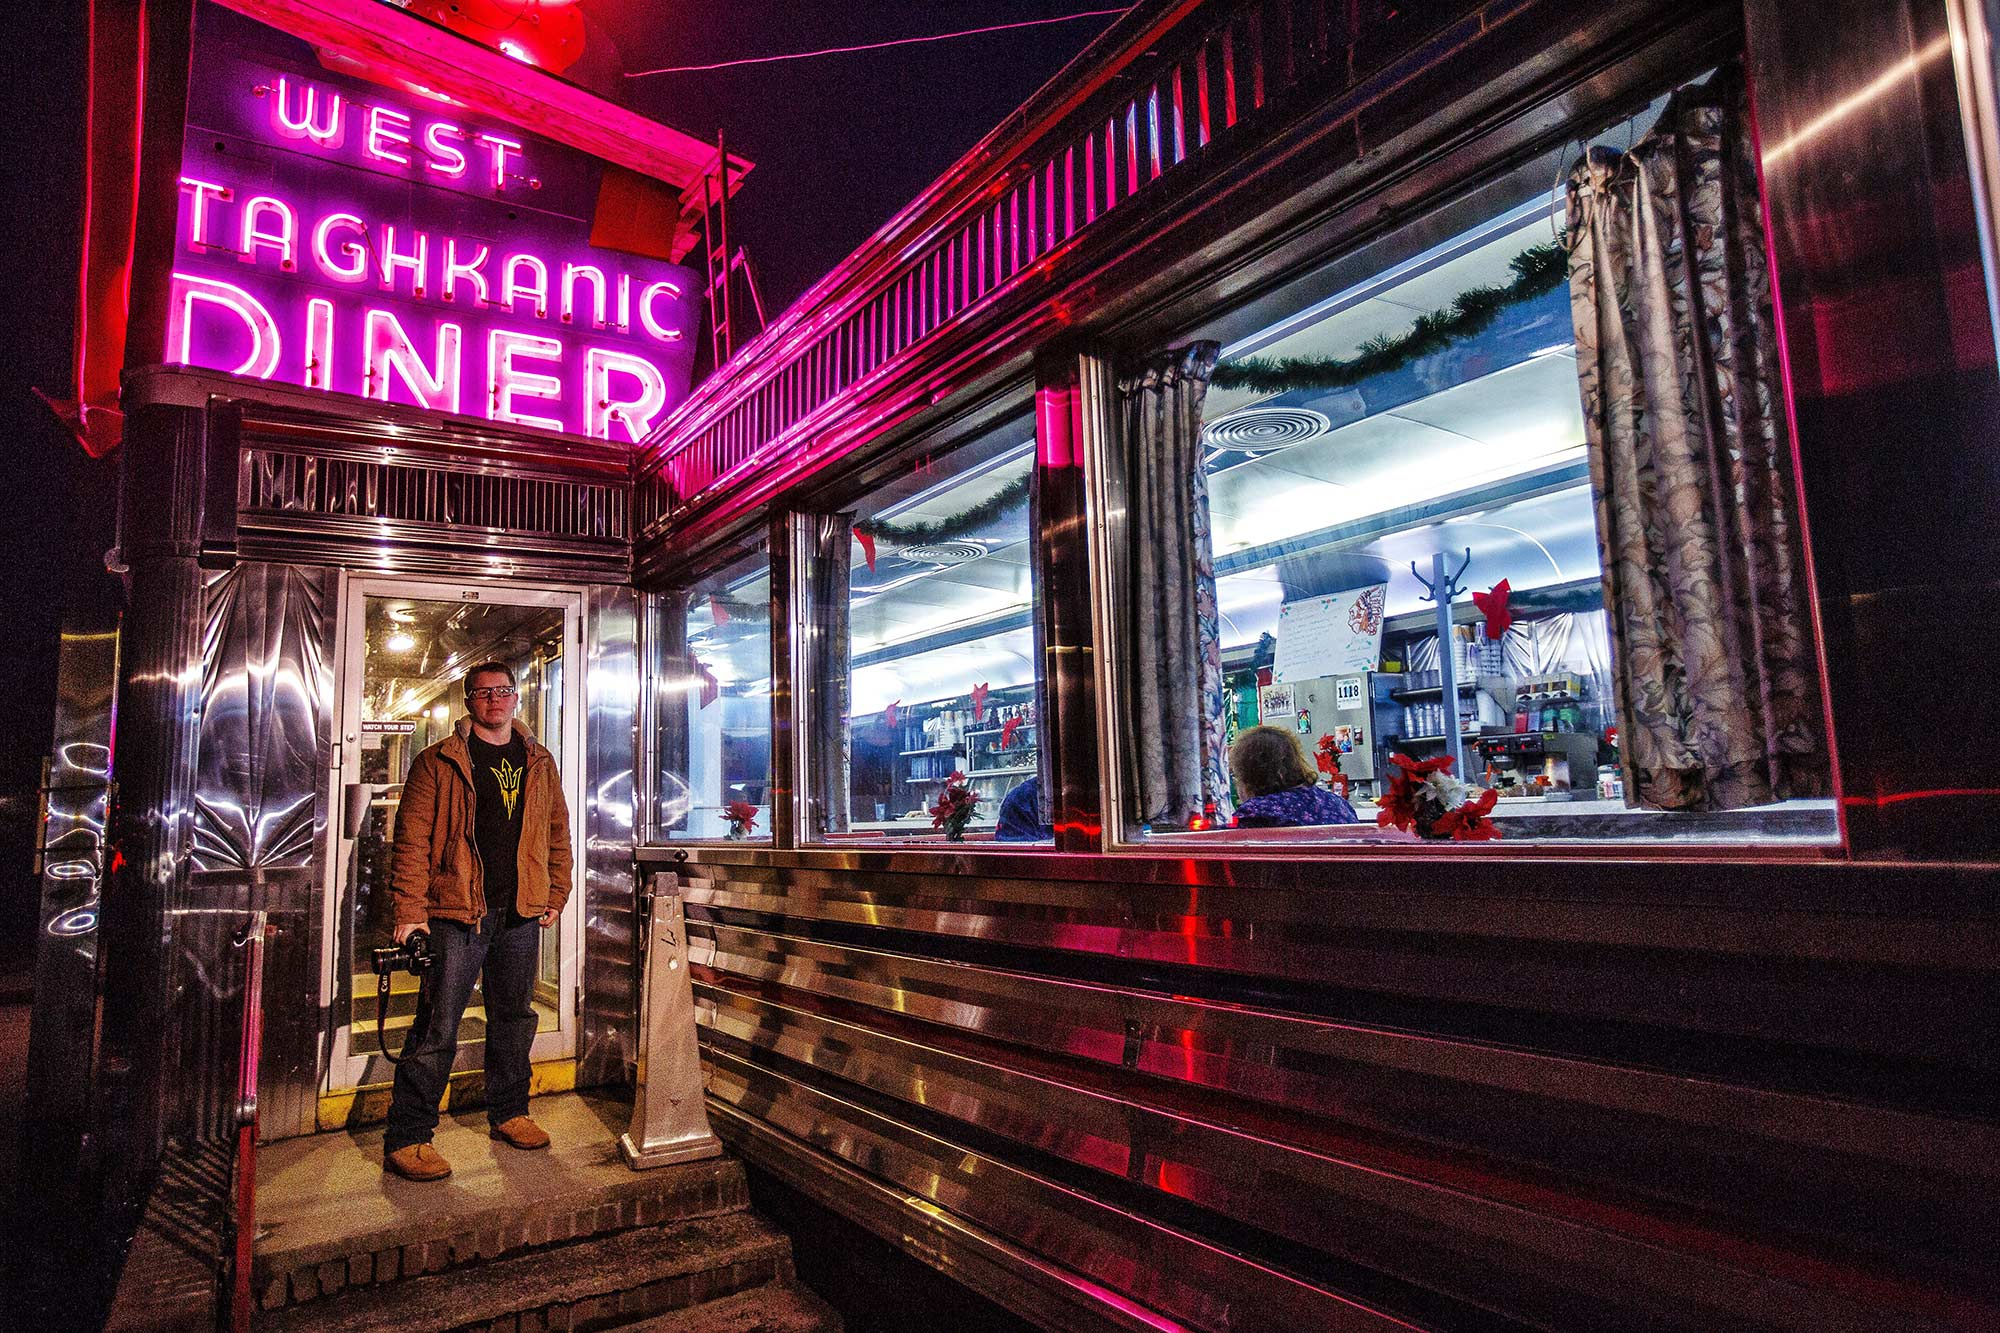 West Taghkanic Diner, Ancram, NY 12/28/14